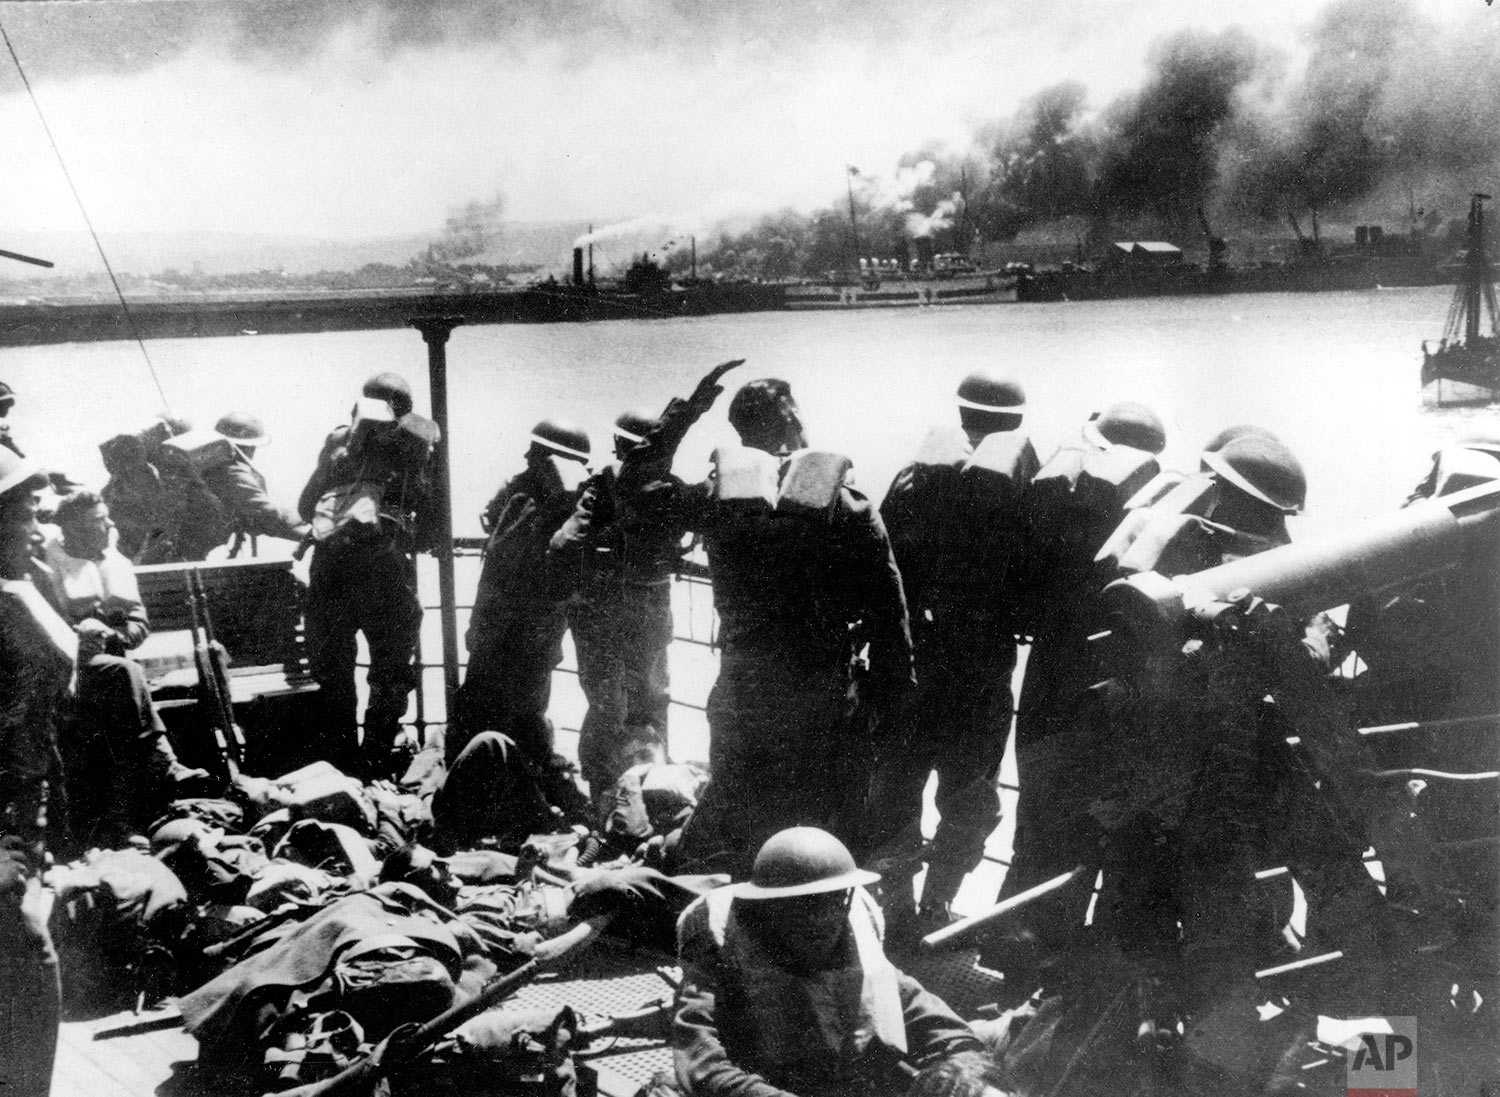 Troops of the British Expeditionary Force view the Nazi bombardment of Dunkirk from a transport after their evacuation from the French coast during World War II. (AP Photo)